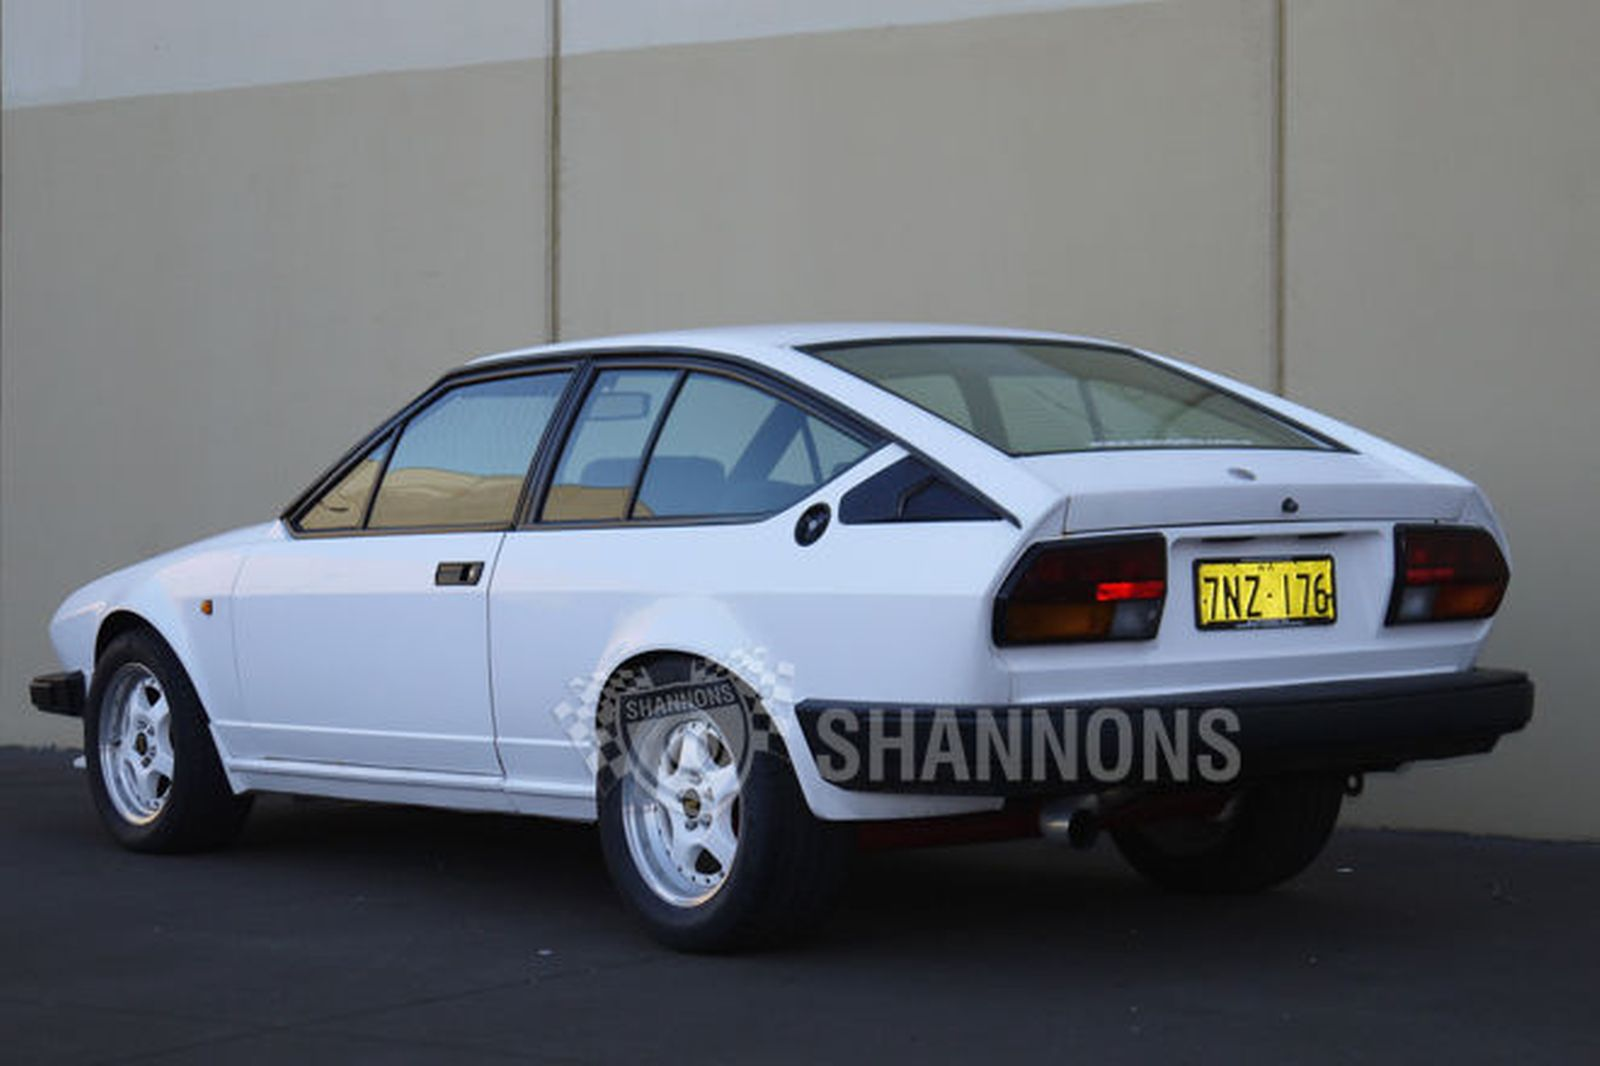 https://www.shannons.com.au/library/images/auctions/T4L2U4Z3J8P2I0V9/1600x1066/1983-alfa-romeo-gtv6-coupe.jpg